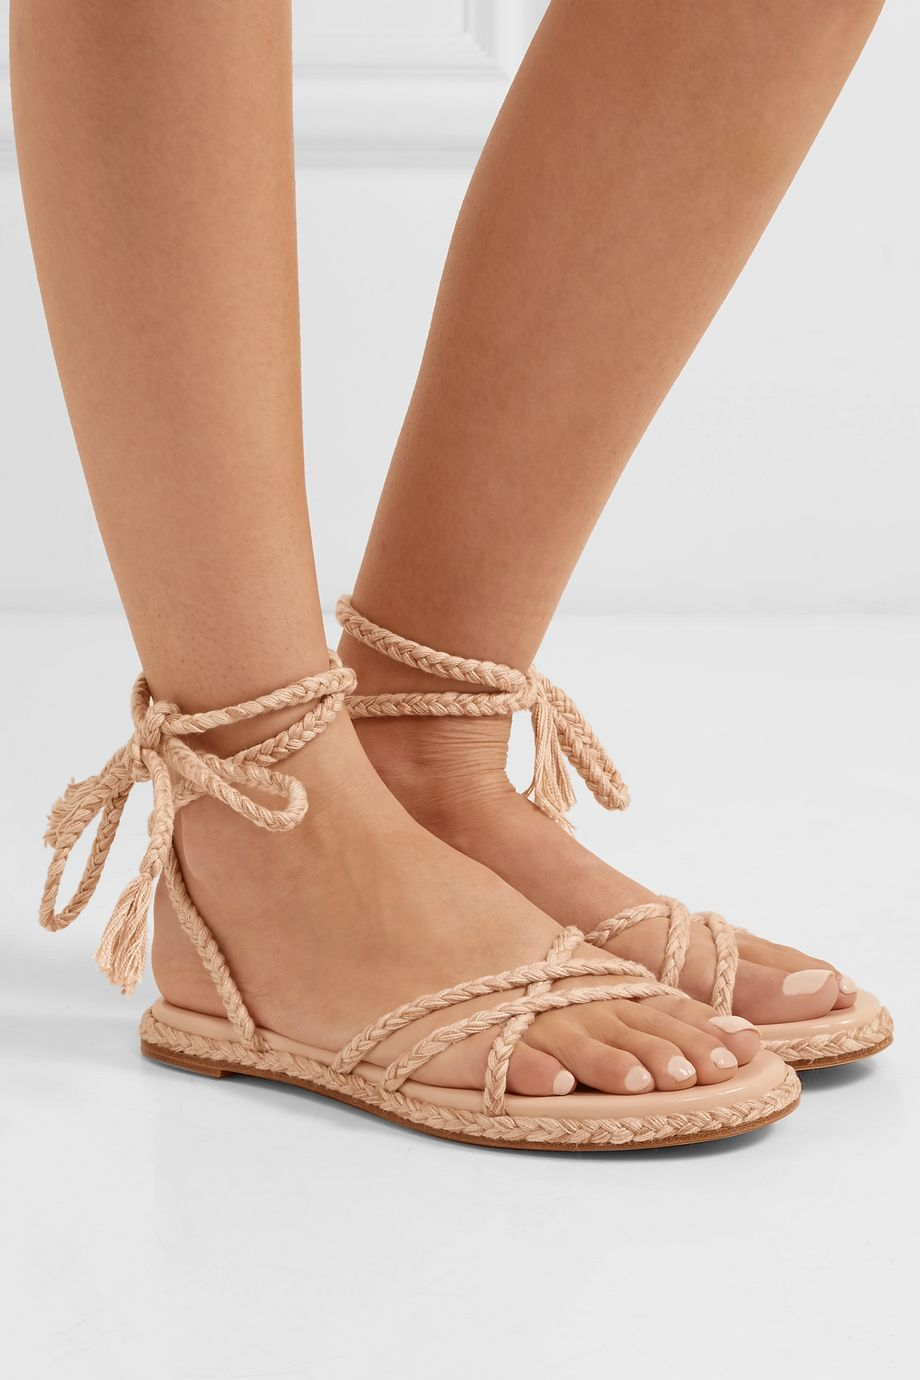 Antolina Bia braided cotton sandals